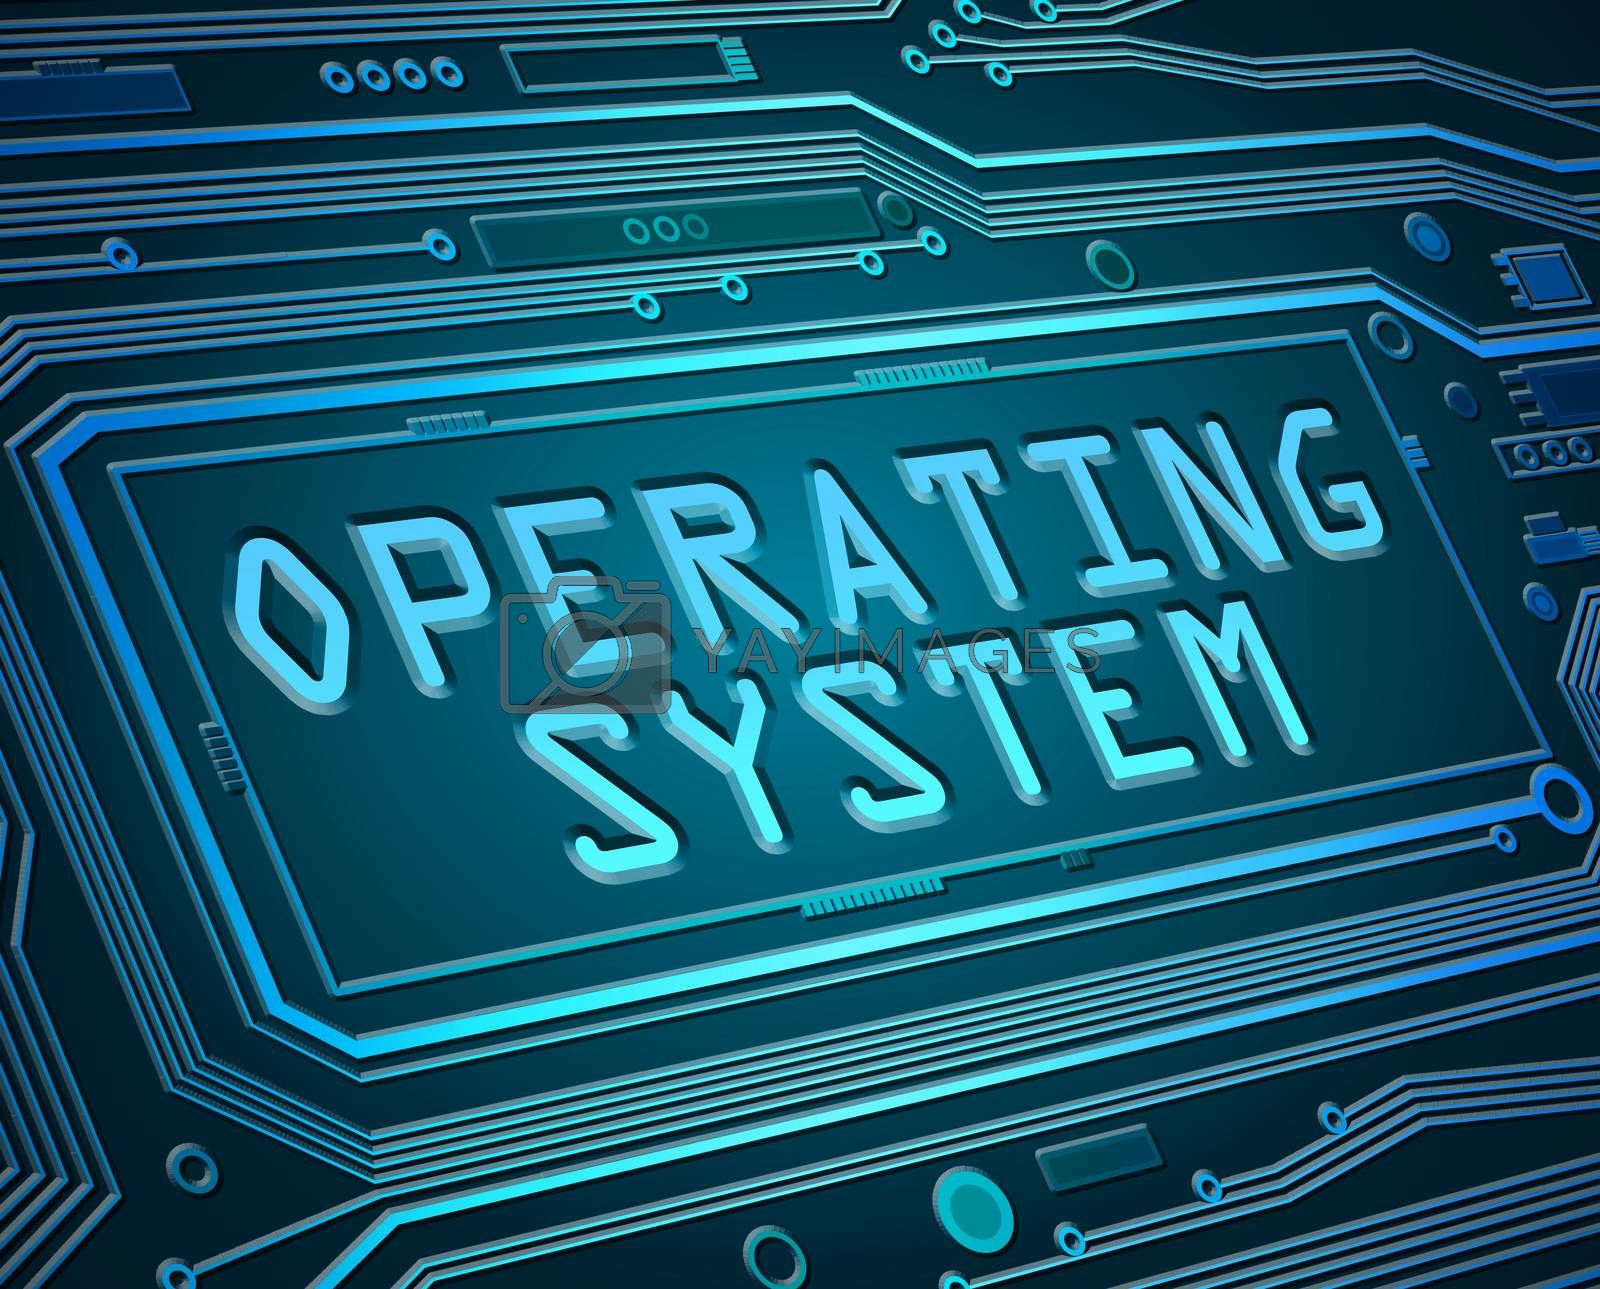 Abstract style illustration depicting printed circuit board components with an operating system concept.